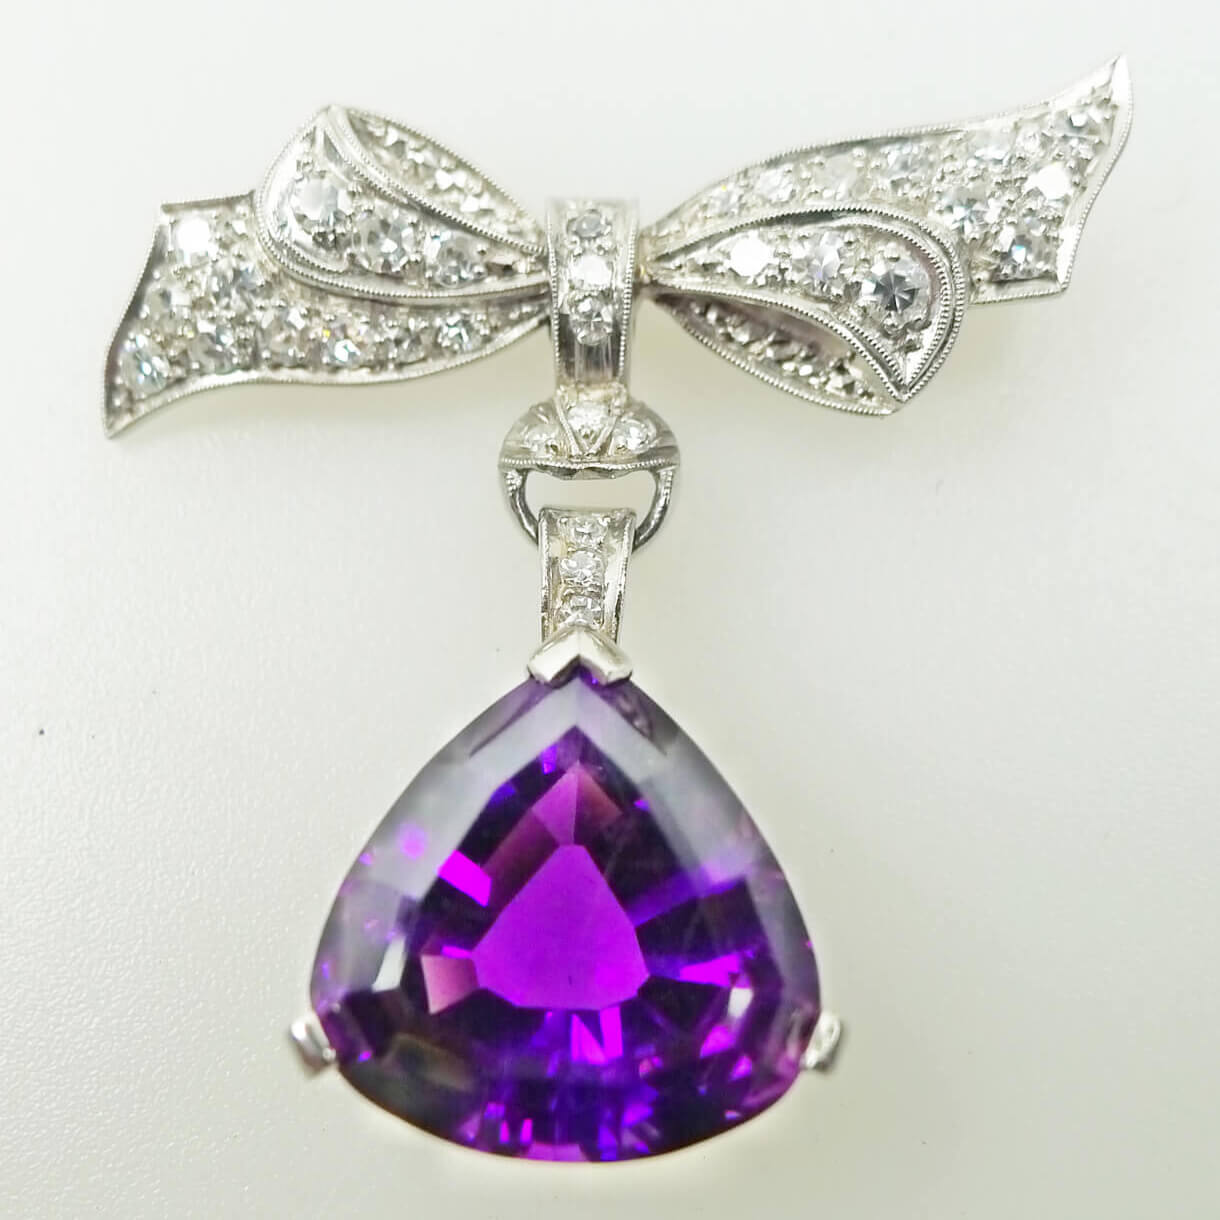 Bow Style Diamond Brooch with Drop Pear Shaped Amethyst